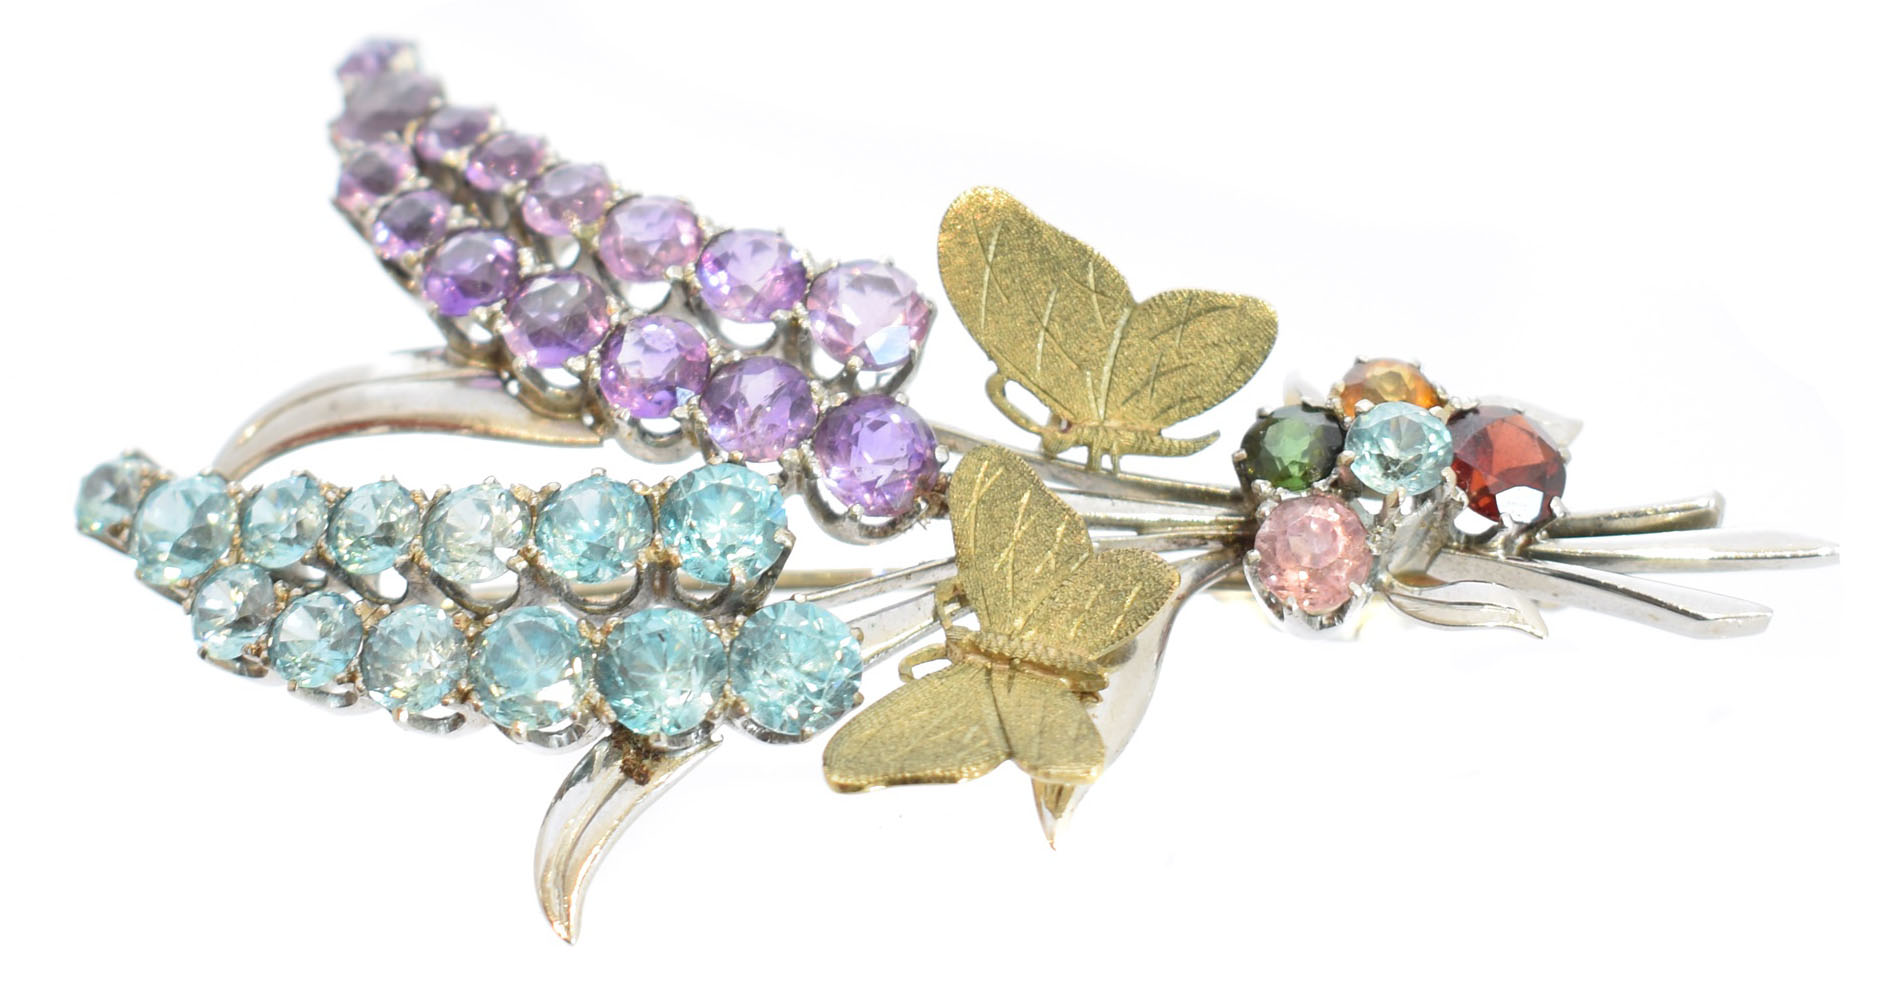 A Cropp & Farr multi-gem spray brooch, the circular shape zircon and amethyst floral sprigs with textured butterfly accents and zircon, tourmaline, citrine and garnet cluster to ribbon, makers marks for Cropp & Farr, stamped 9ct, 5963, length 6.2cm, gross weight 13.7g.